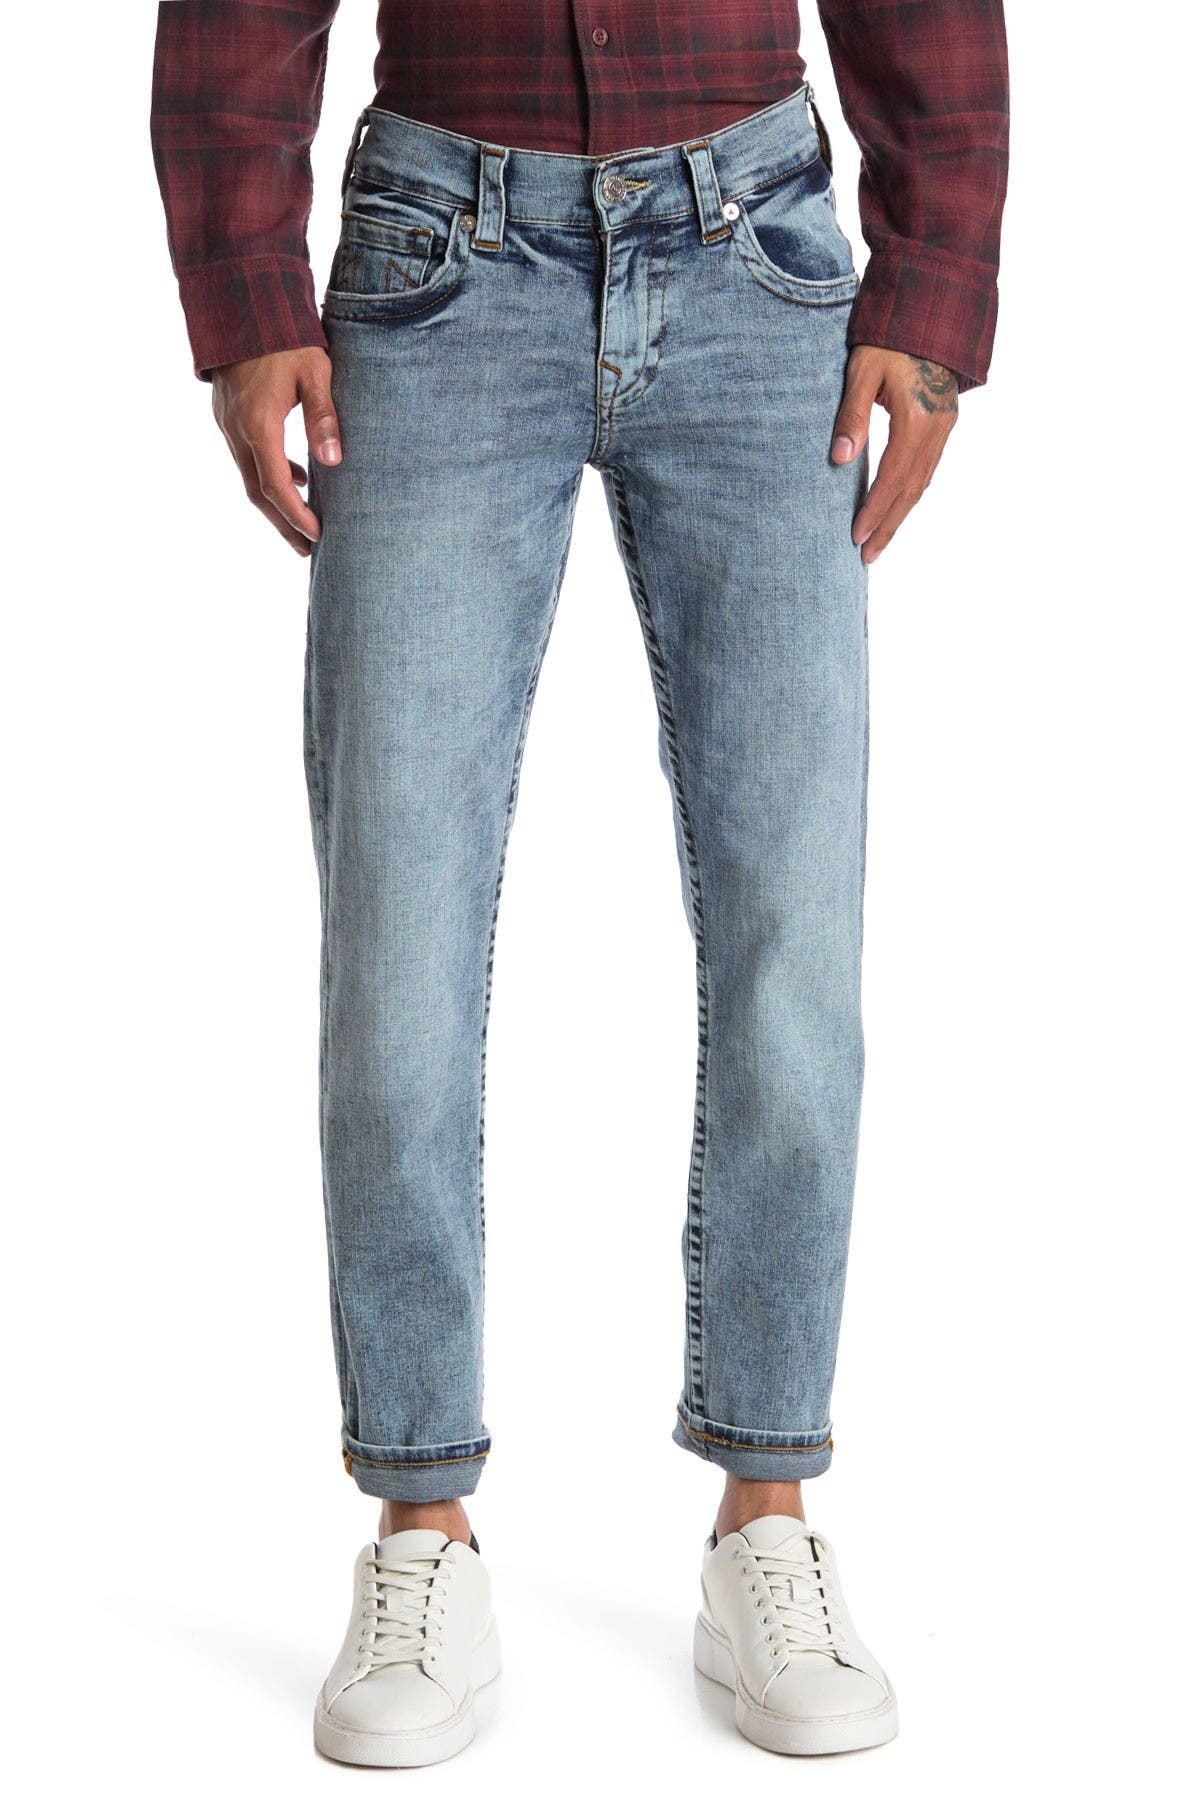 Image of True Religion Geno Relaxed Jeans